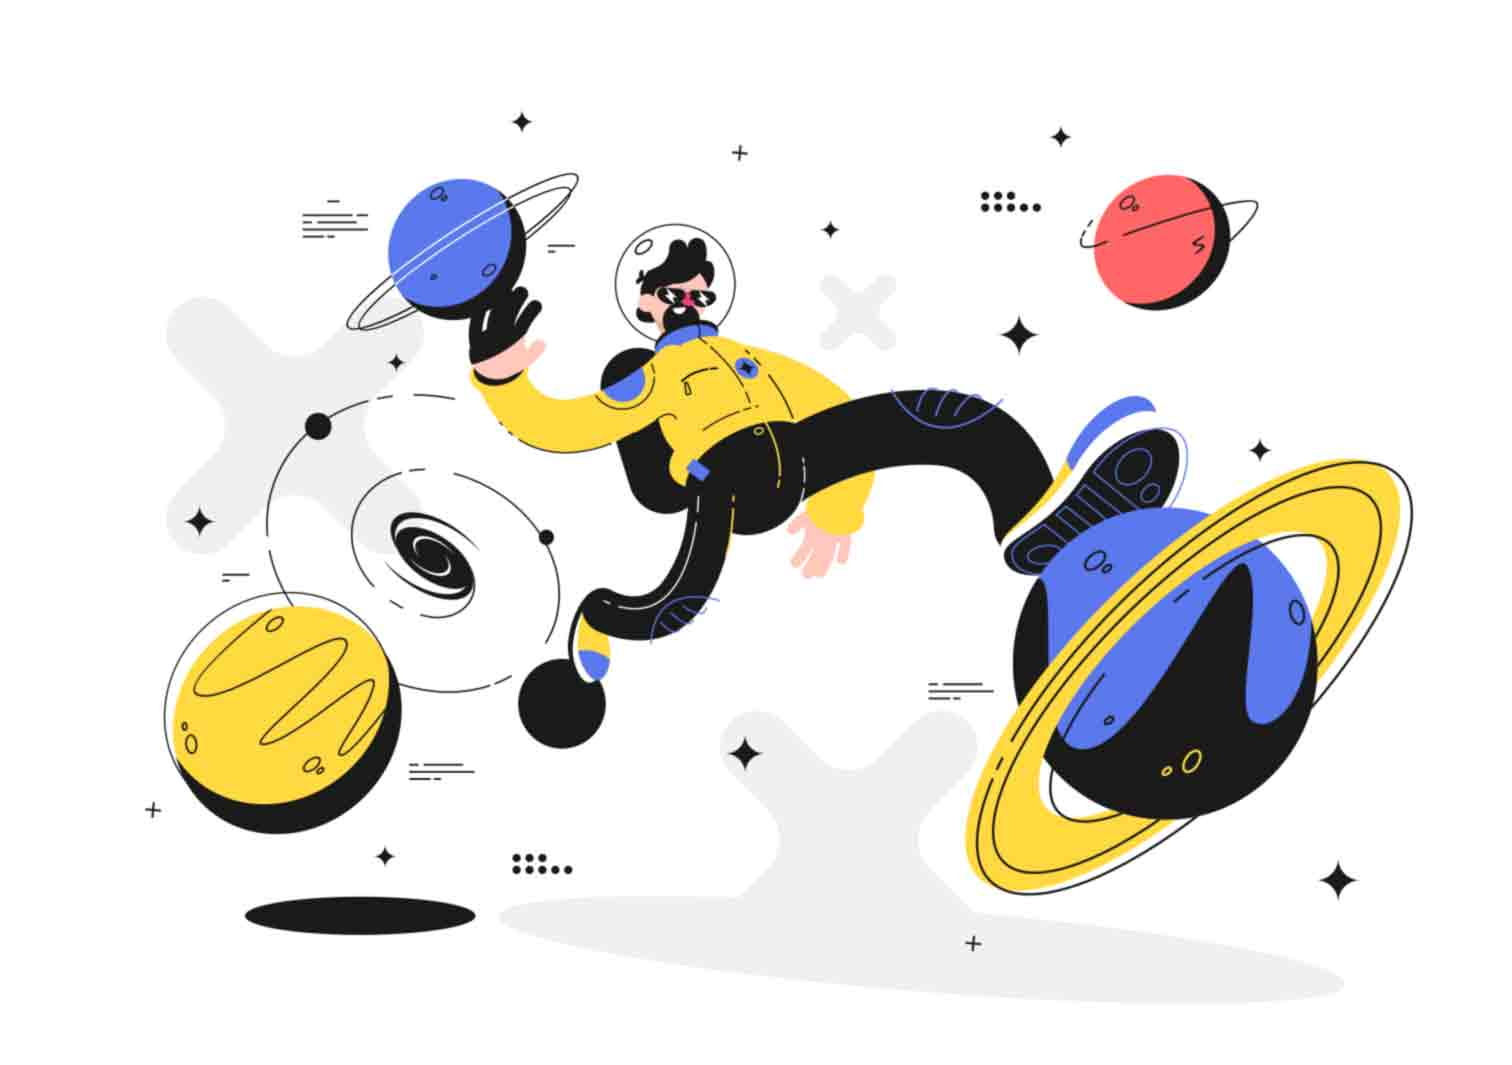 Fun and charismatic vector character illustrations made with blue color domination.